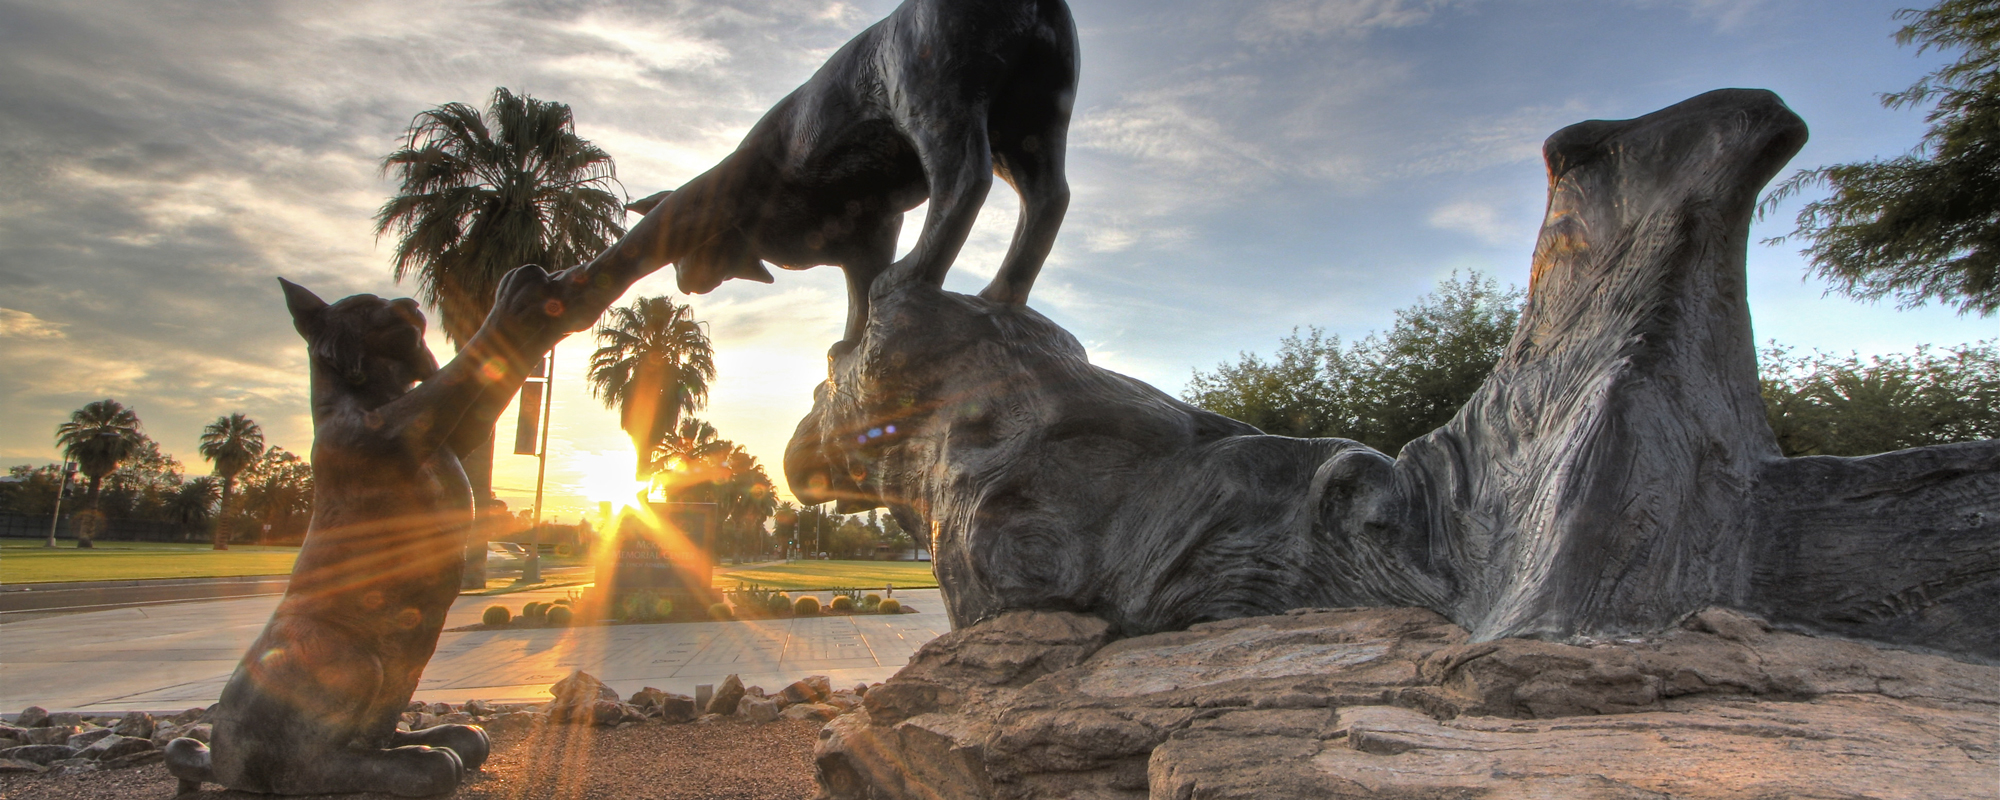 Statue of two wildcats touching paws on the University of Arizona campus